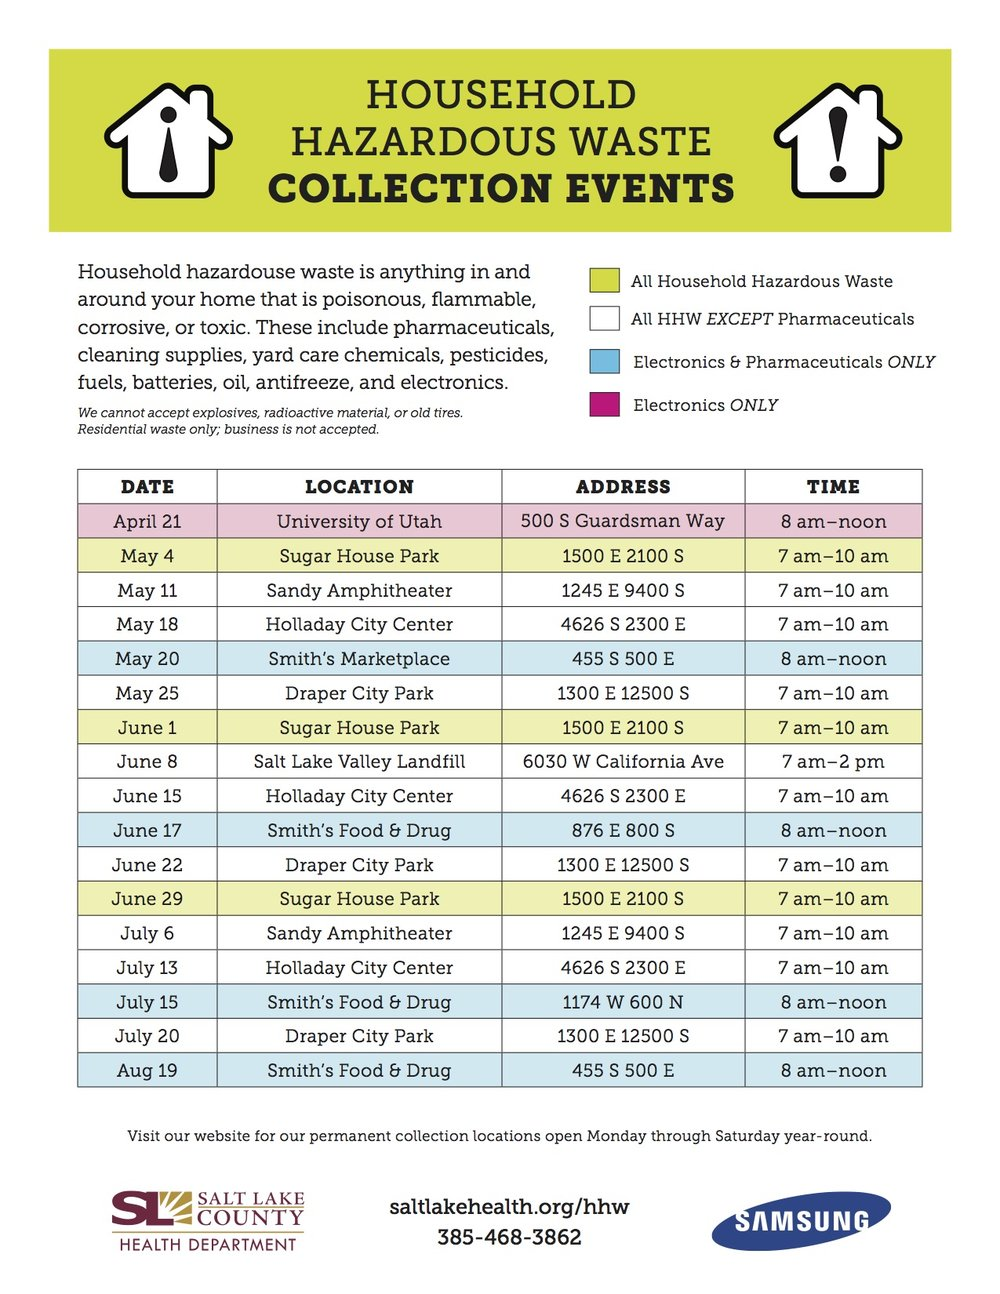 2017 Salt Lake County Hazardous Waste Collection Events